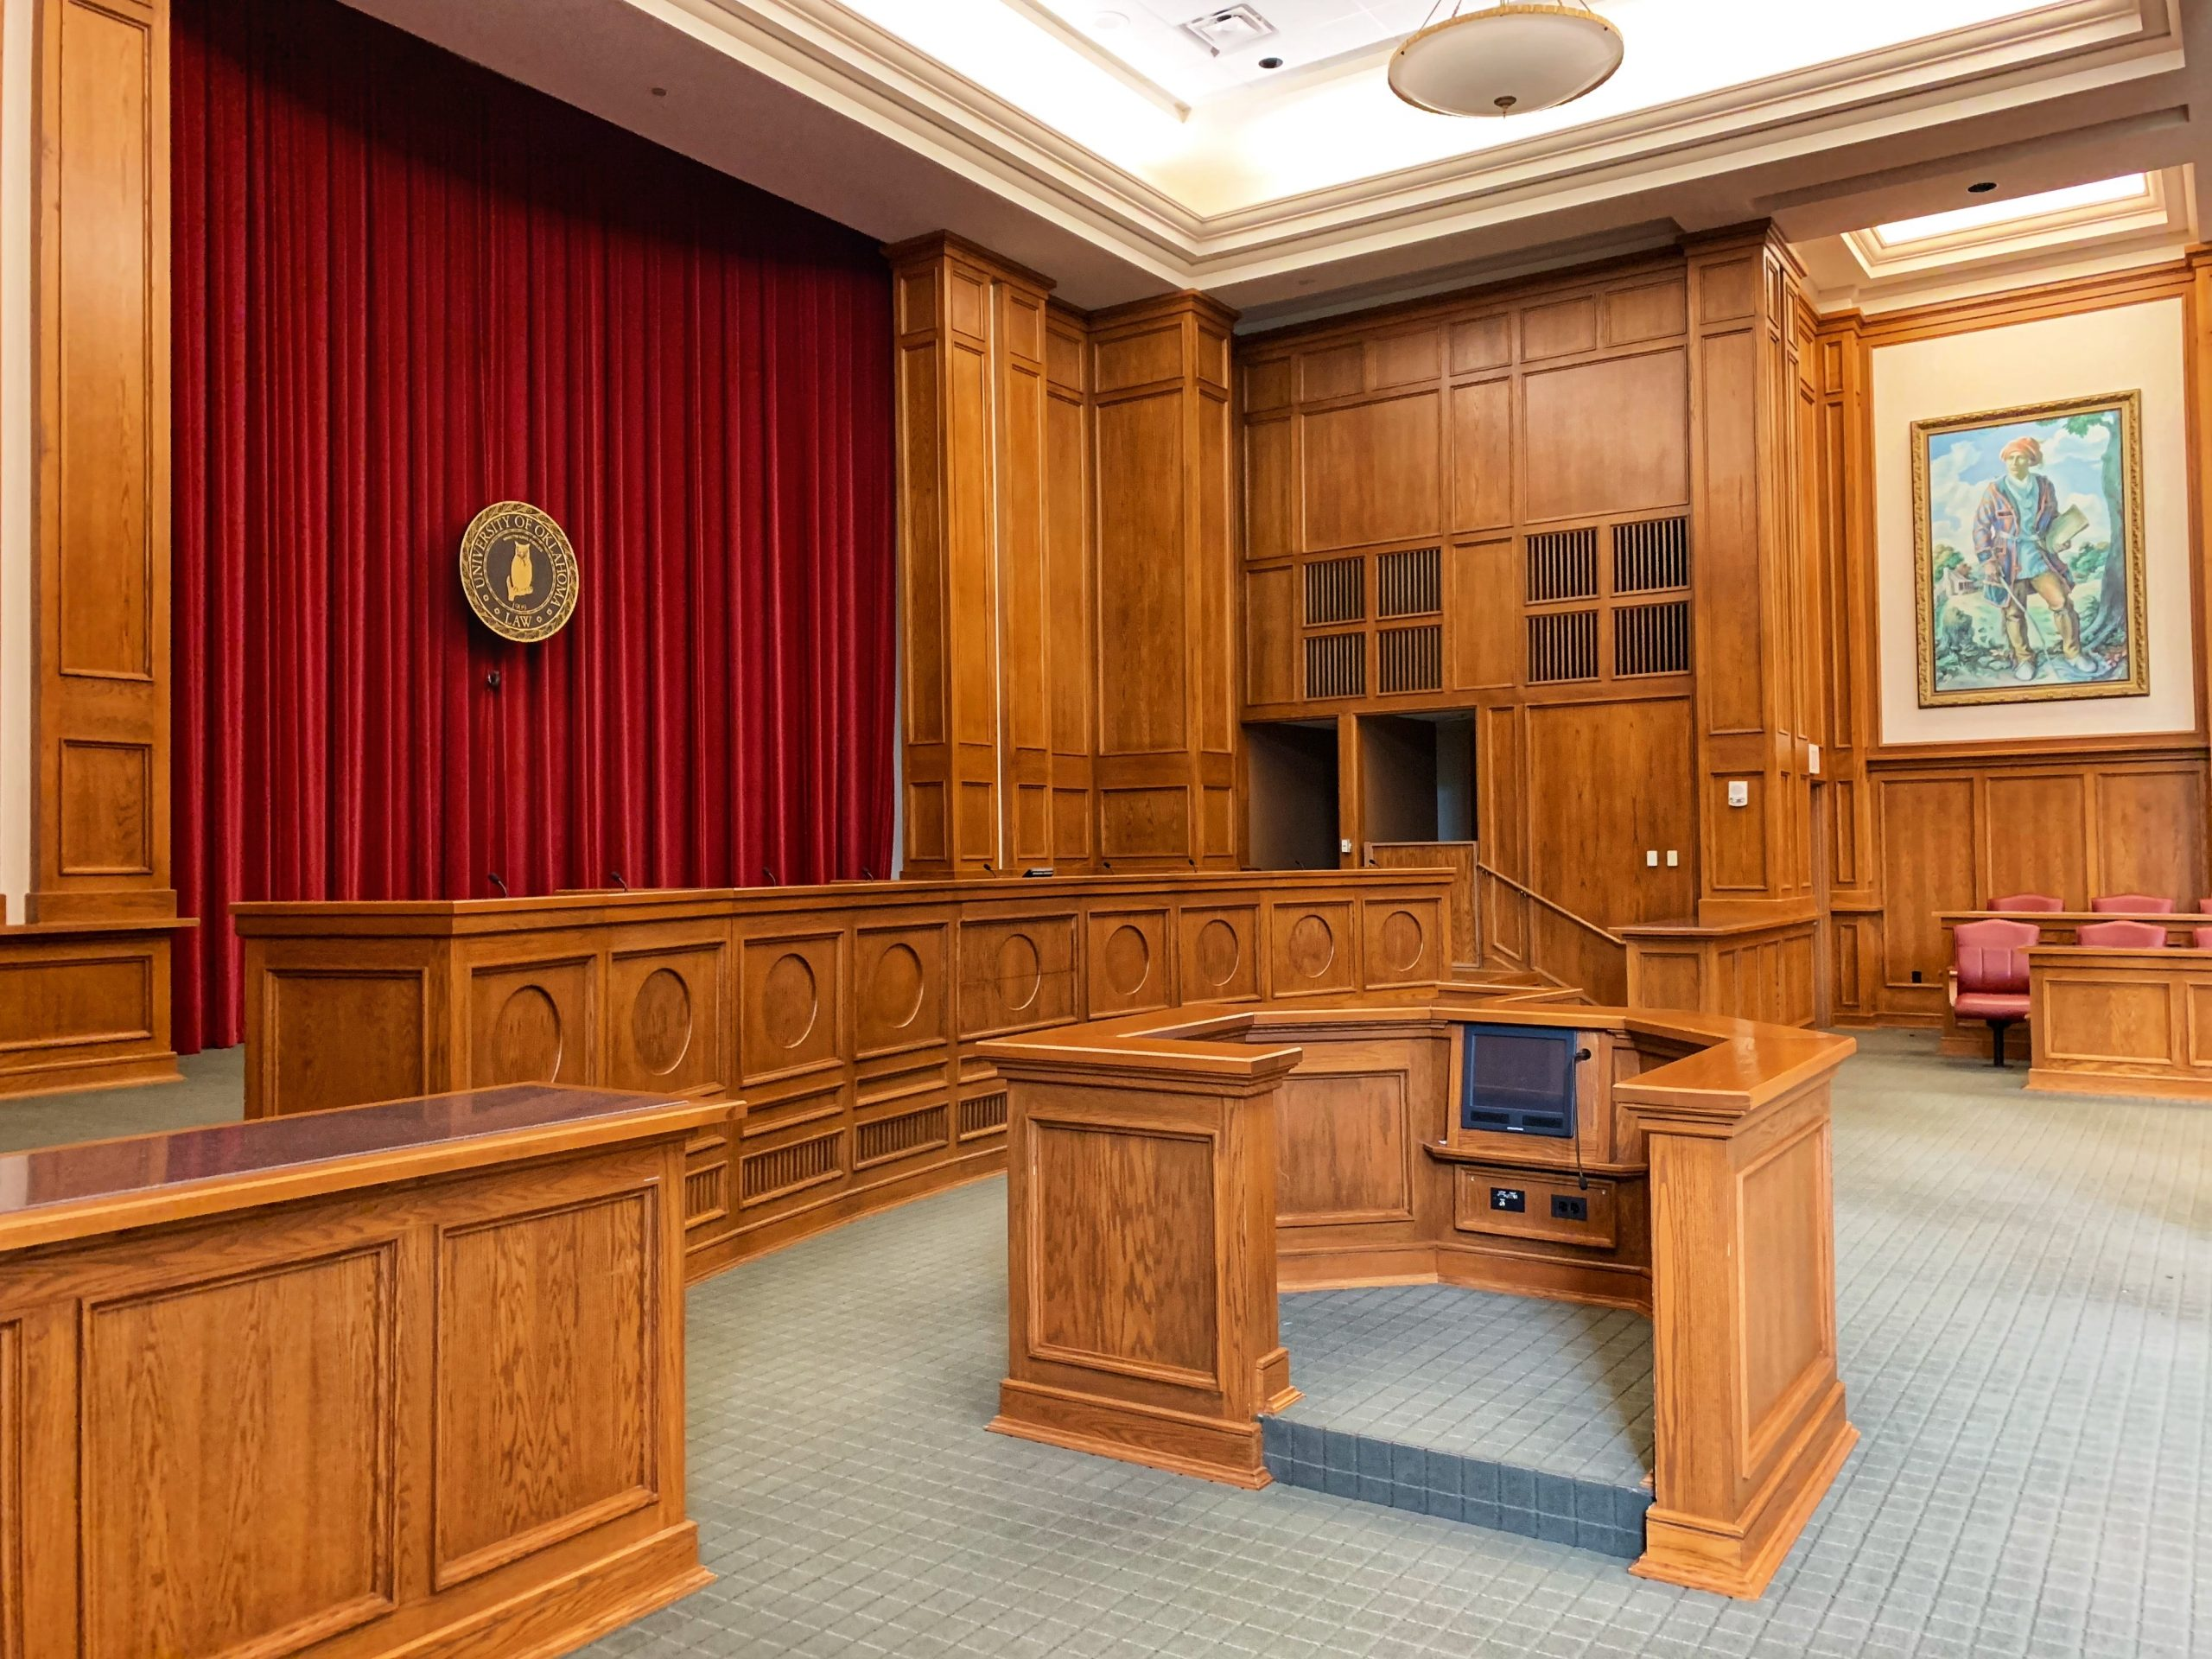 How Are Civil And Criminal Cases Related To Each Other?